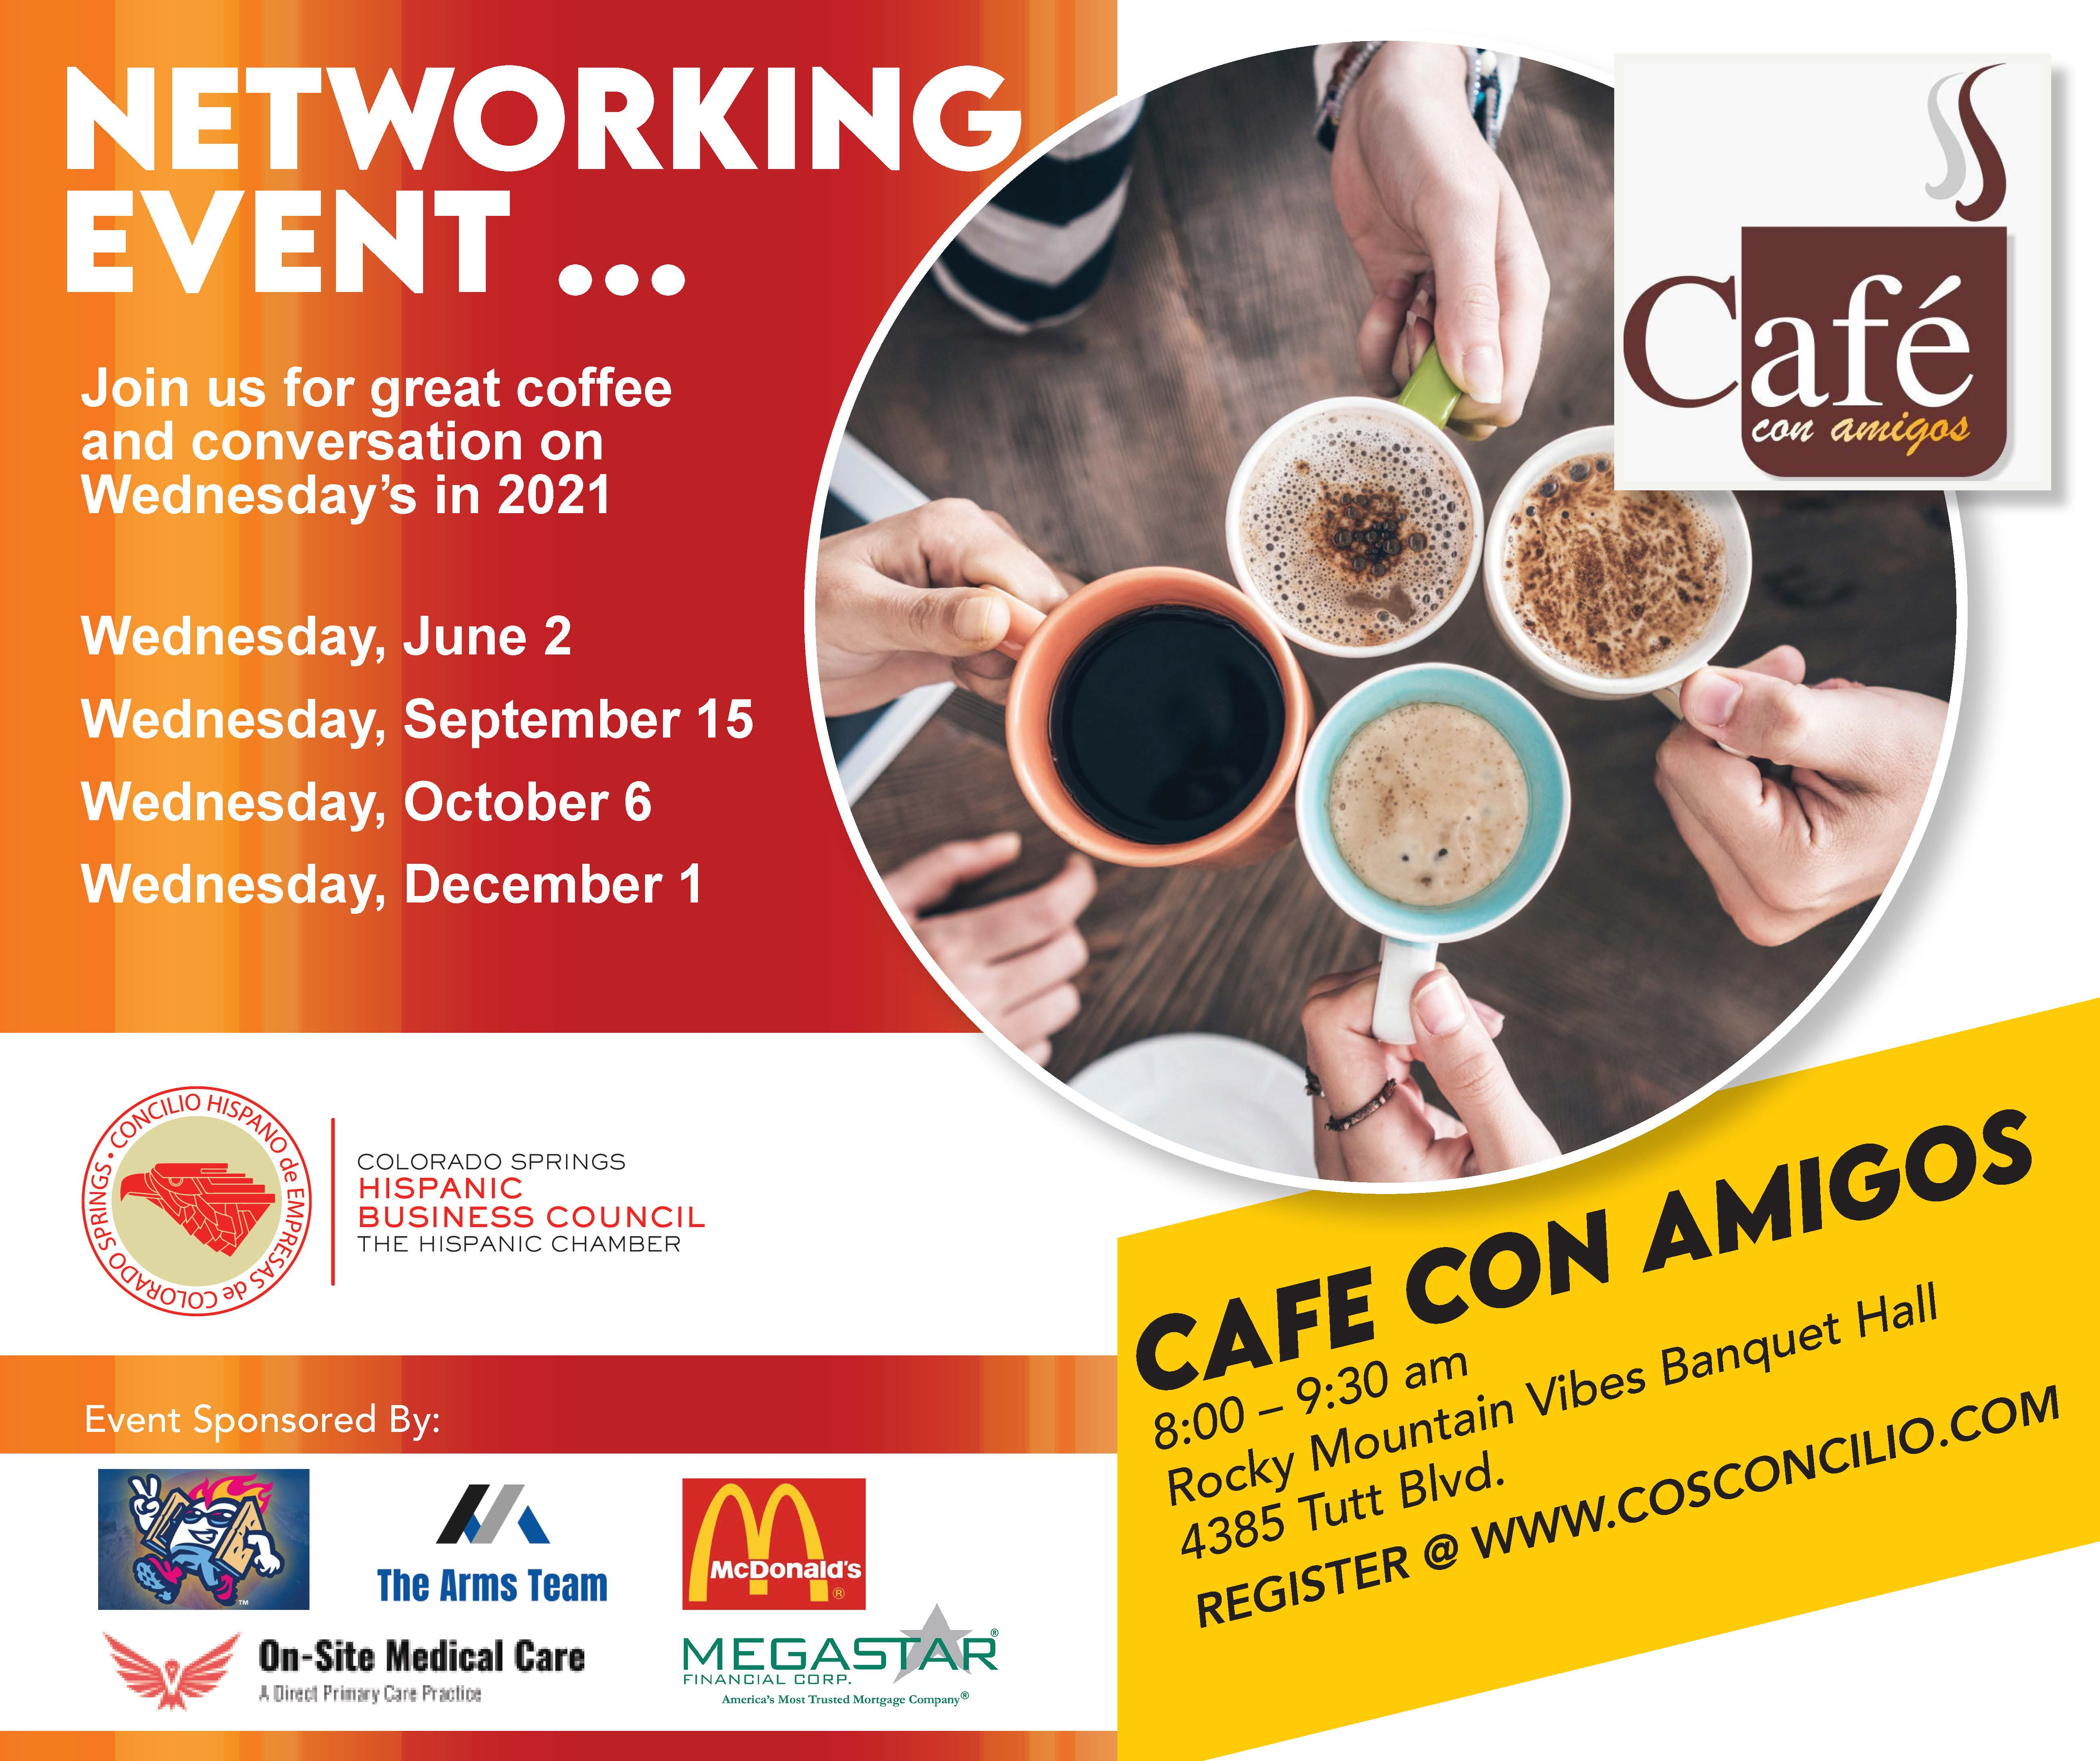 CAFE-CON-AMIGOS-PROMOTION-UPDATE.jpg